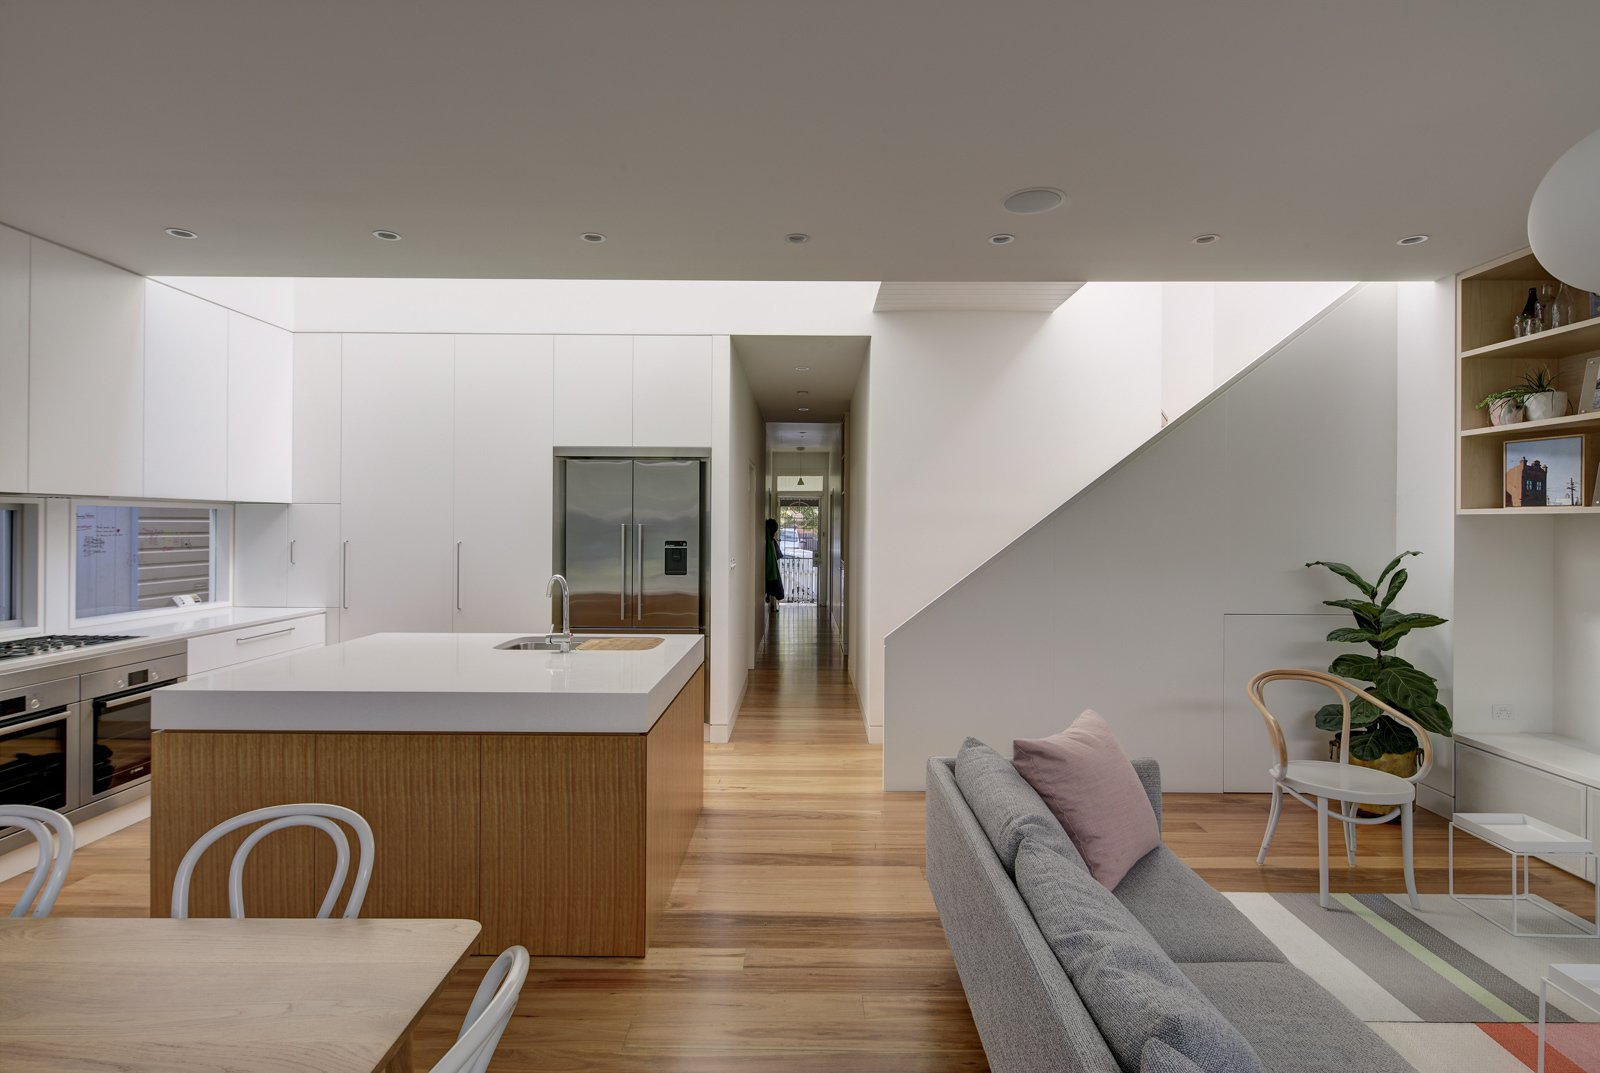 Kitchen, Engineered Quartz Counter, White Cabinet, Medium Hardwood Floor, and Ceiling Lighting Interior spaces are simple and understated. Natural timber in light tones contrasts with white walls, lit by washes of sunlight.  Inner West House by Andrew Burns